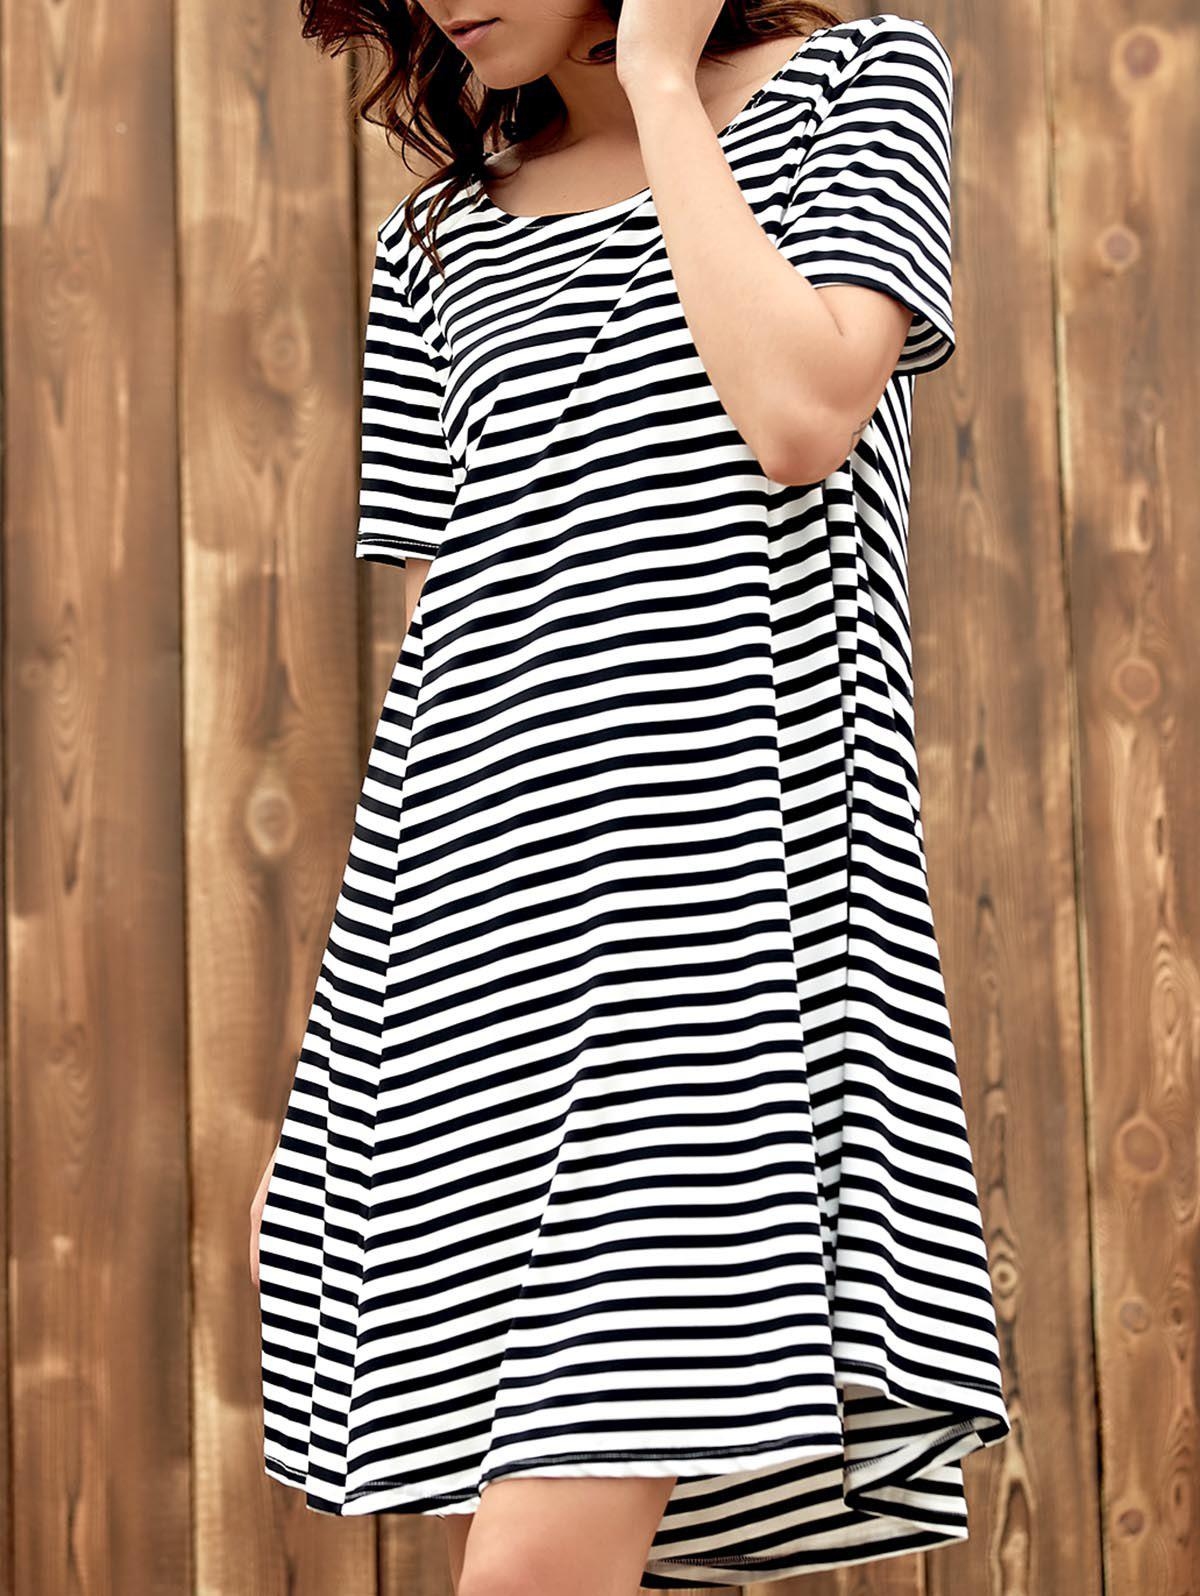 Sweet Style Scoop Neck Short Sleeve Black and White Stripe Women's Dress